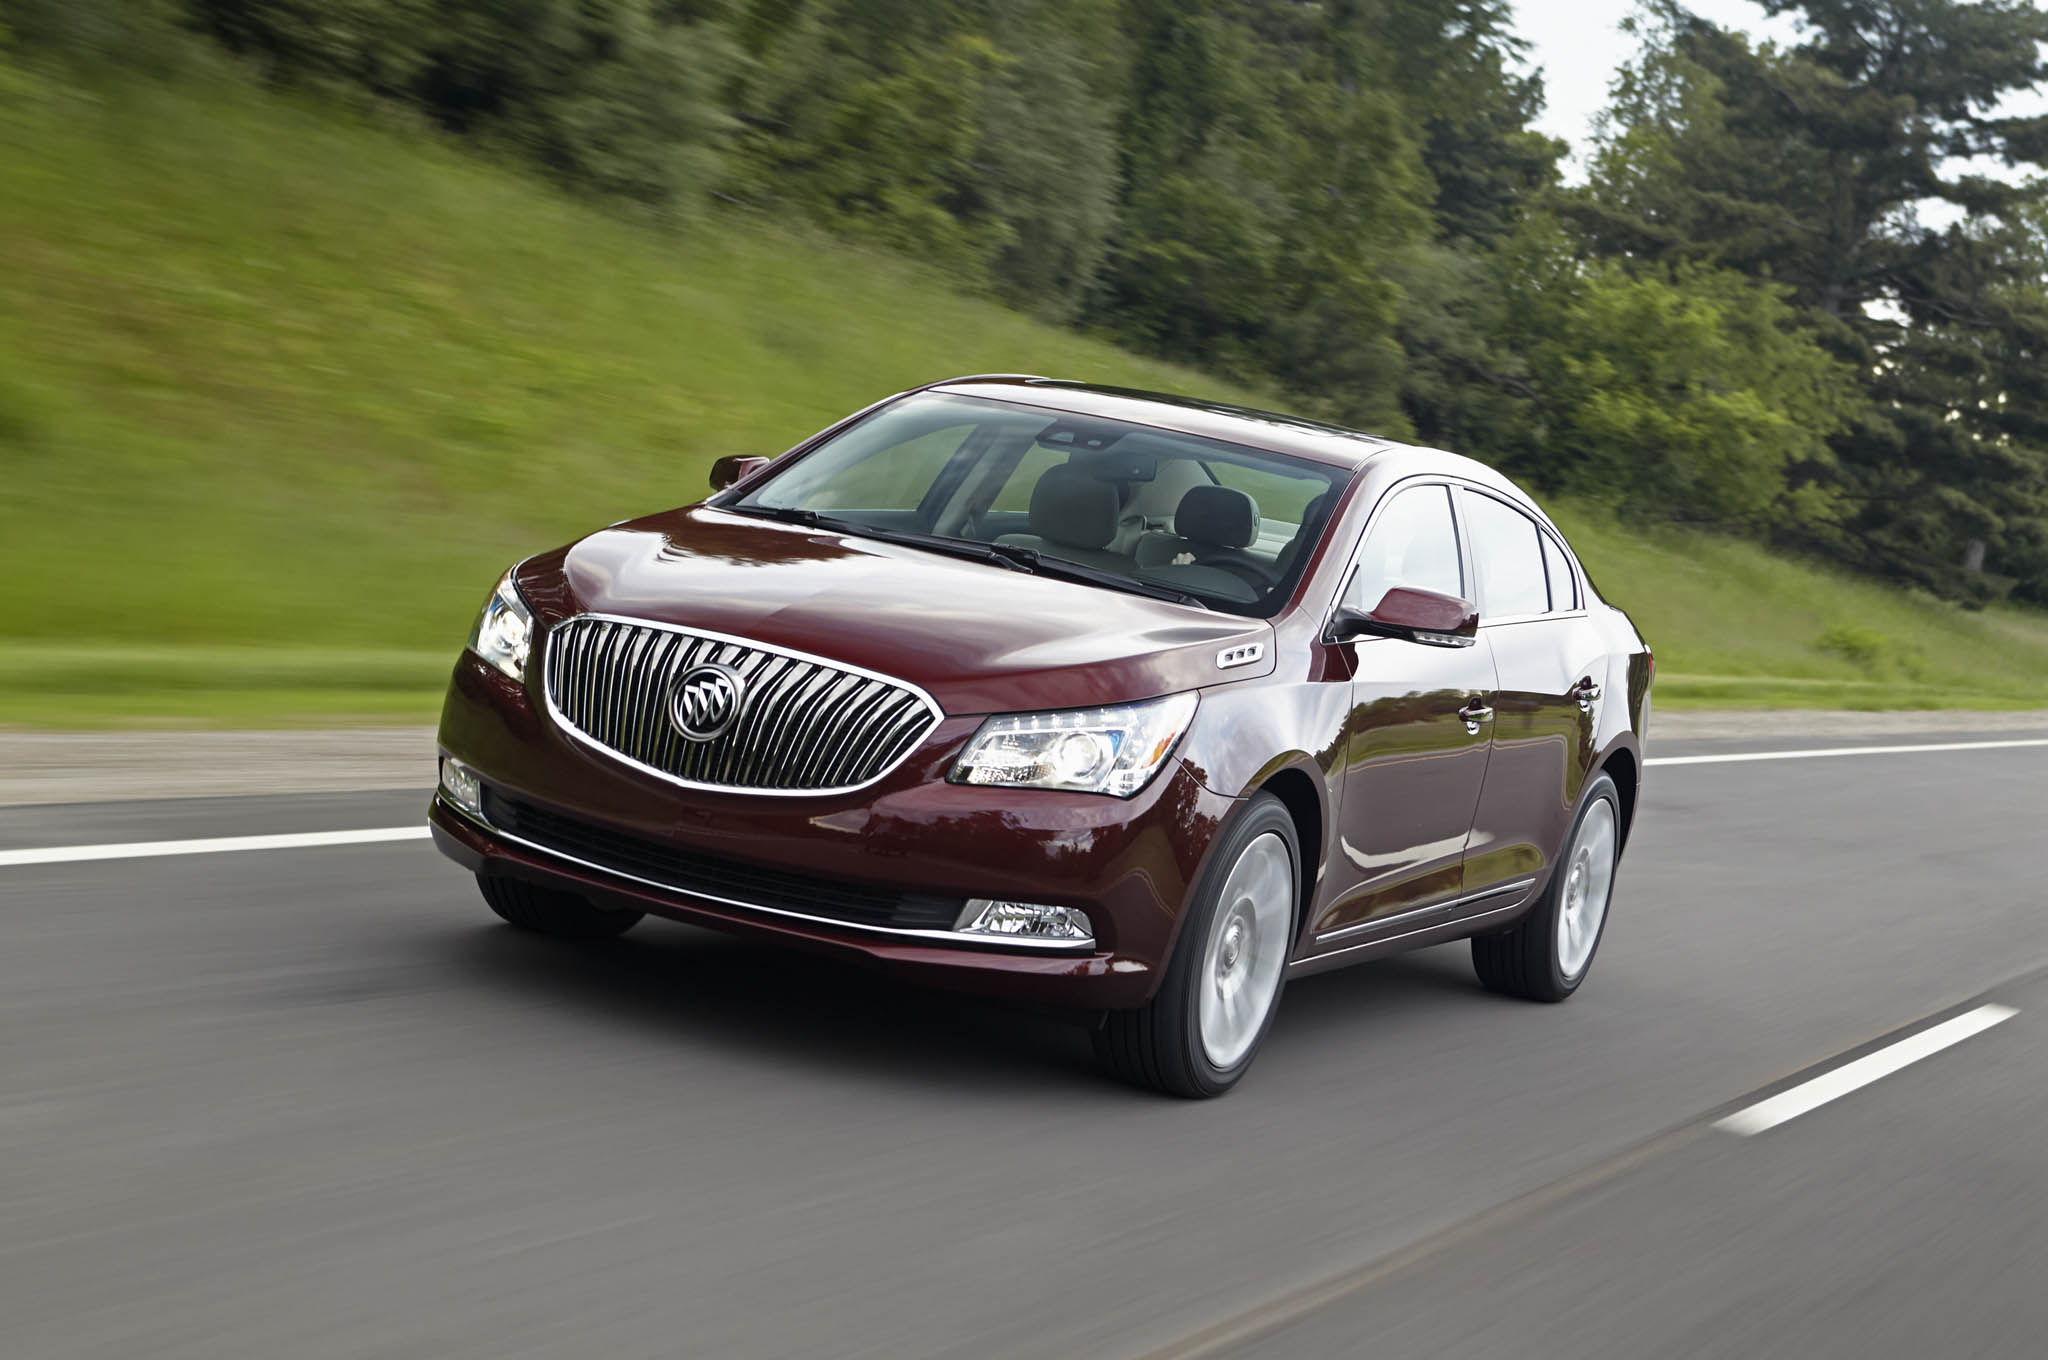 2014 Buick LaCrosse Exterior Front Three Quarters Driving 011